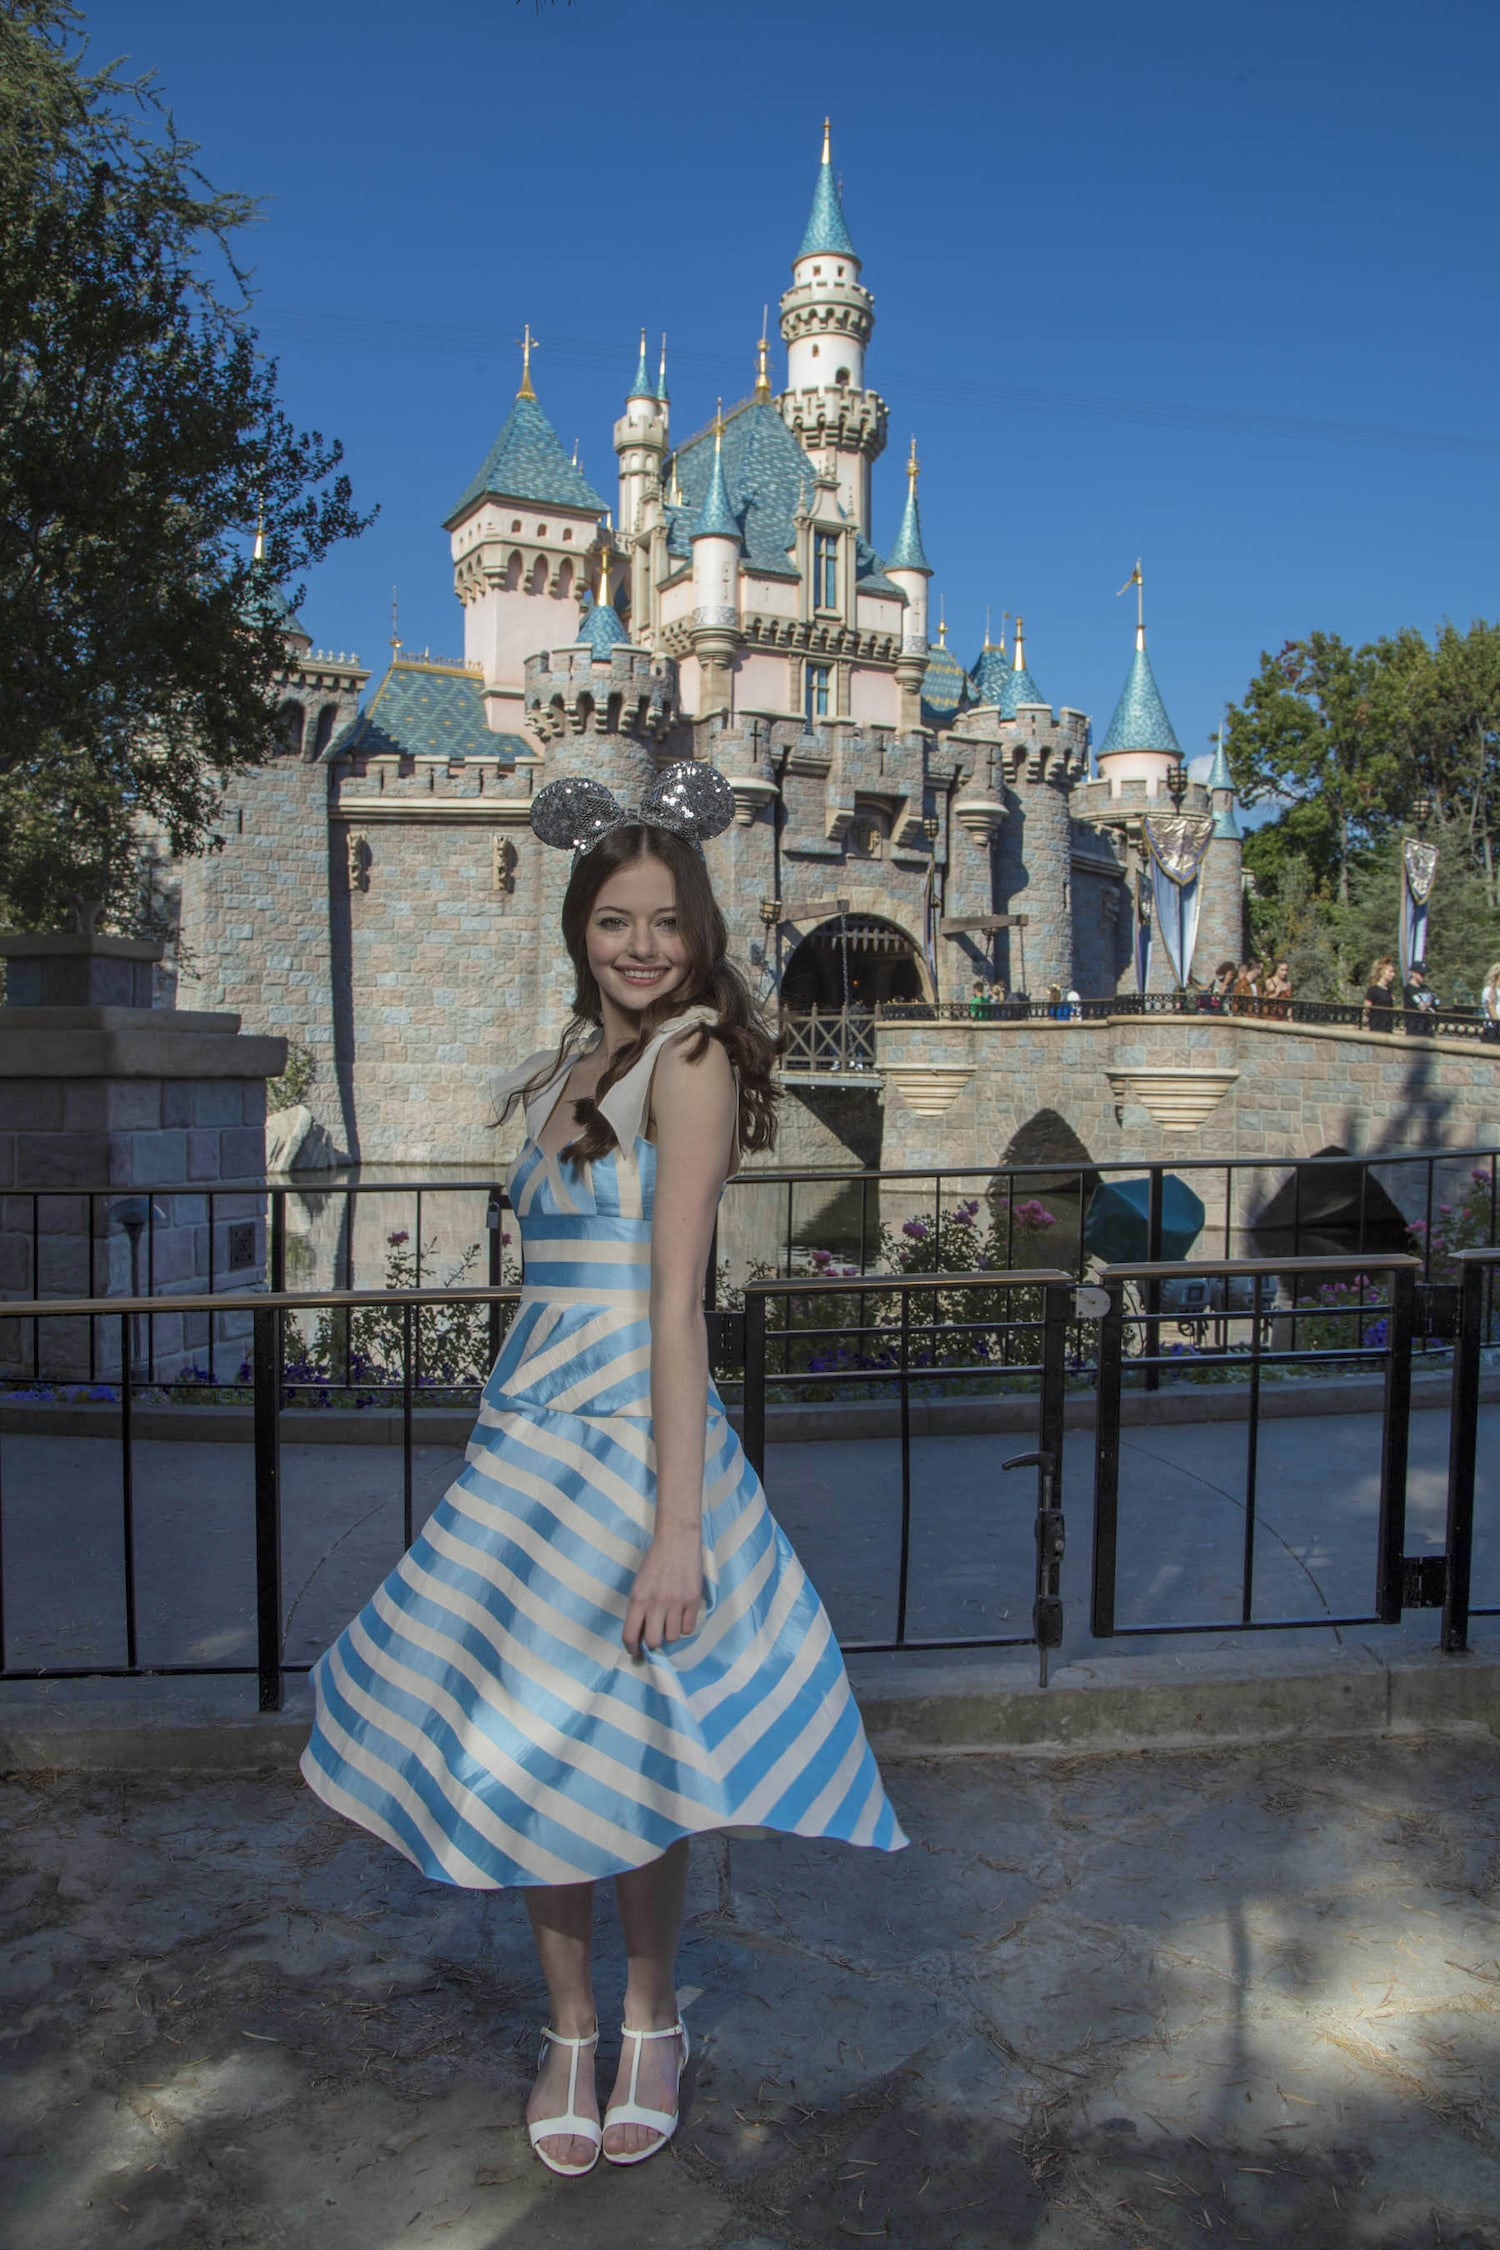 Mackenzie Foy in Blue and White striped dress posing in front of the Disneyland castle